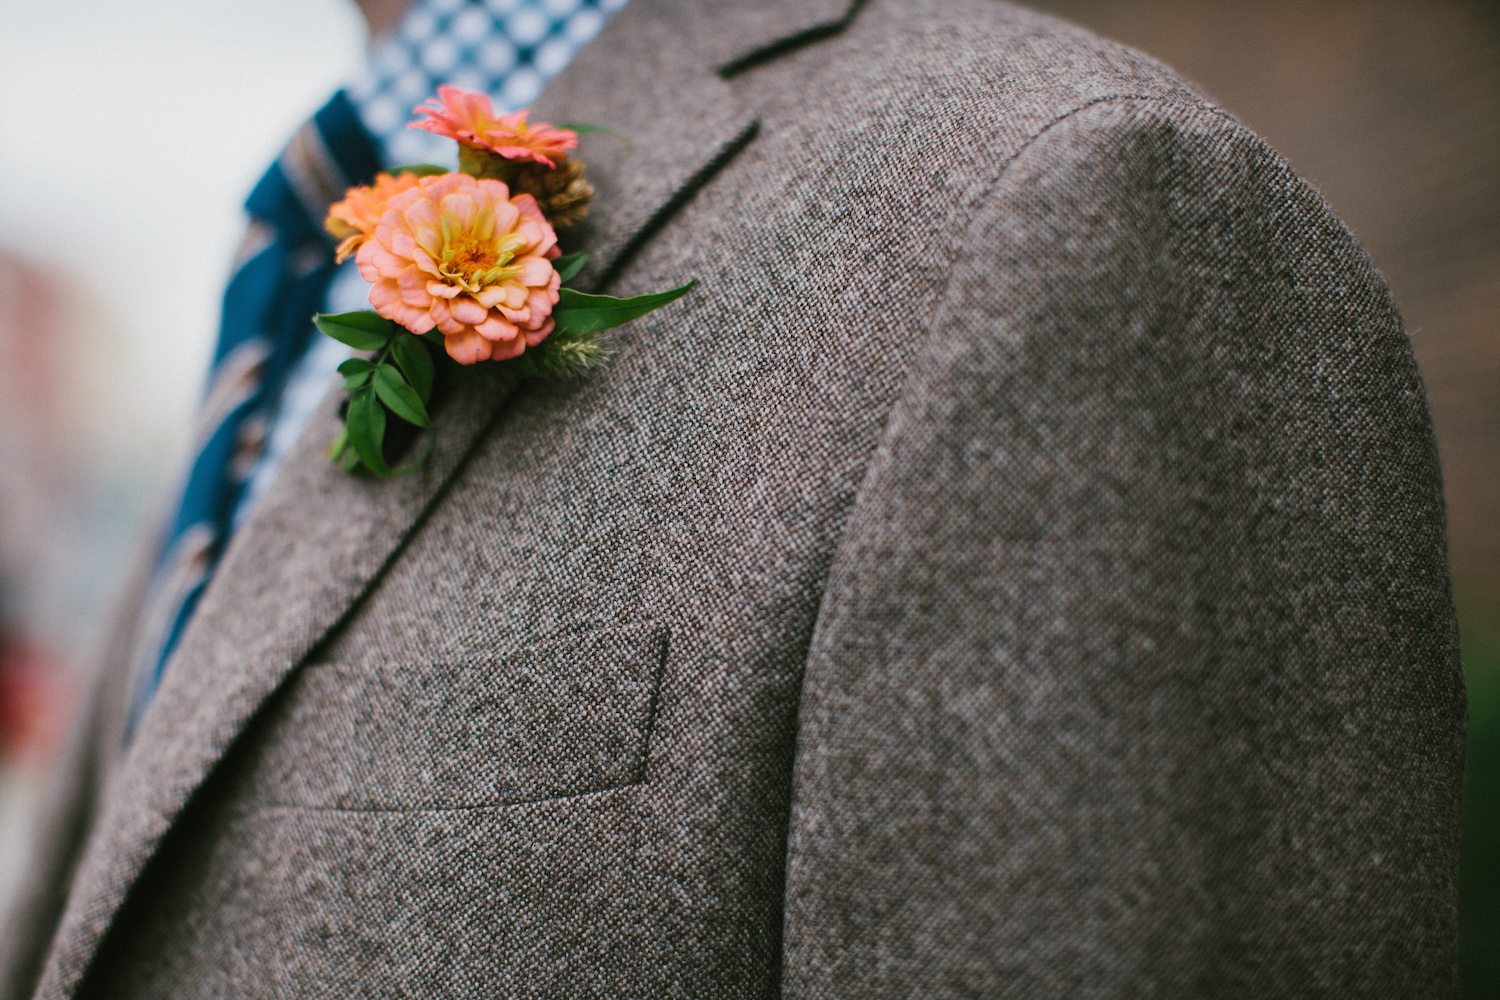 Full Aperture Floral & Corey Torpie Photography  - Brooklyn Wedding - 20.jpeg